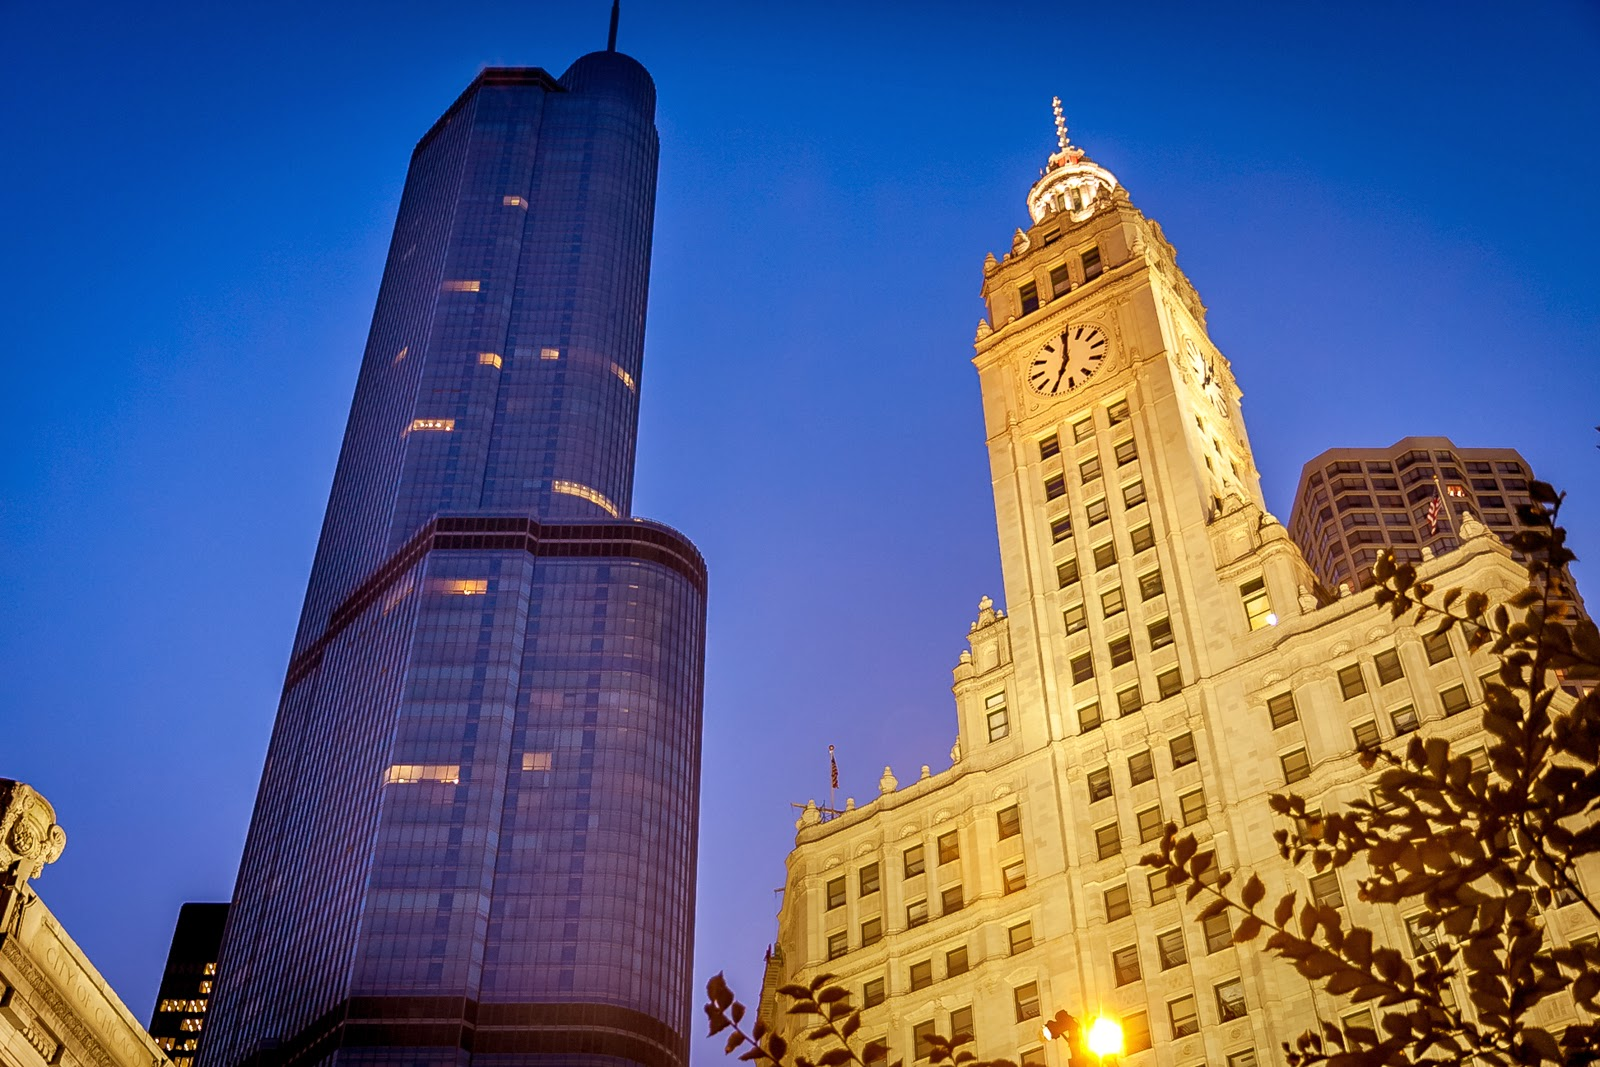 skyscrapers - Chicago real estate photography, Chicago sports photography